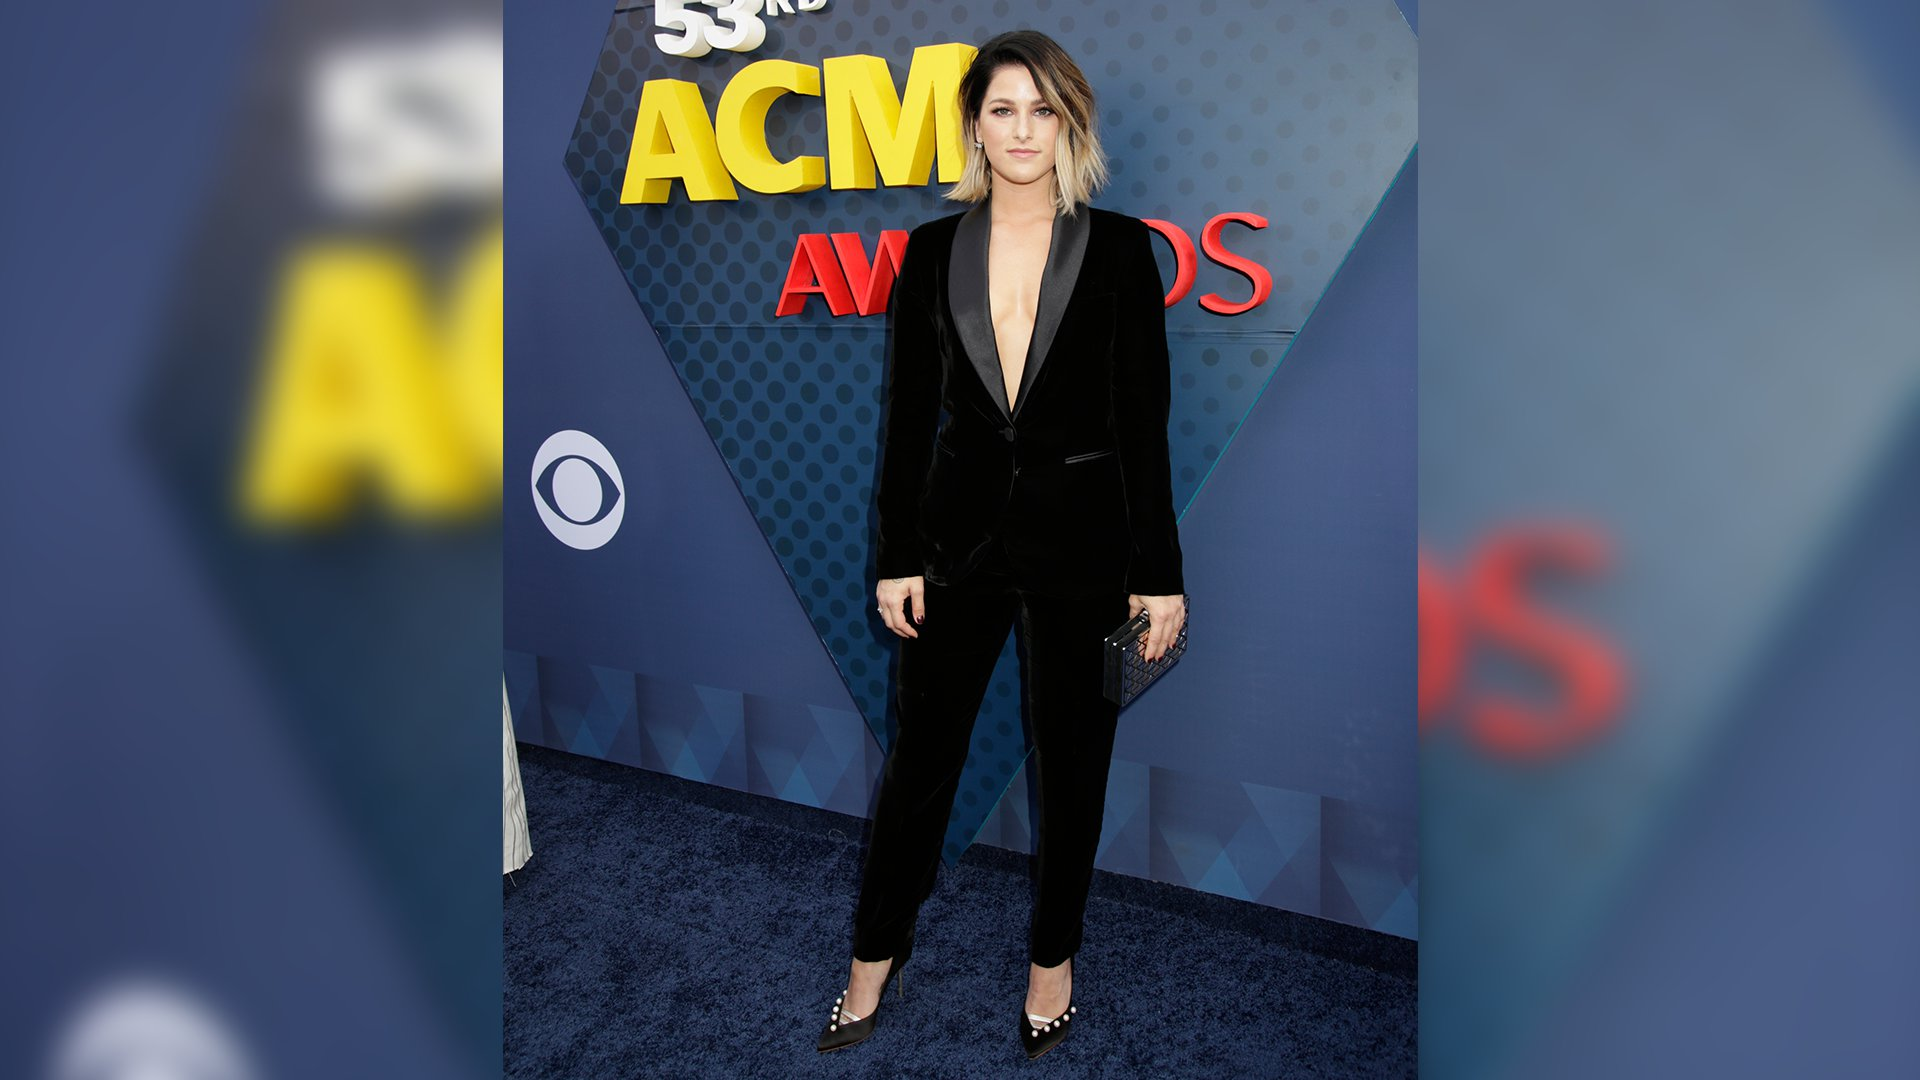 Cassadee Pope takes the idea of black tie to another level in this gorgeous tuxedo suit.